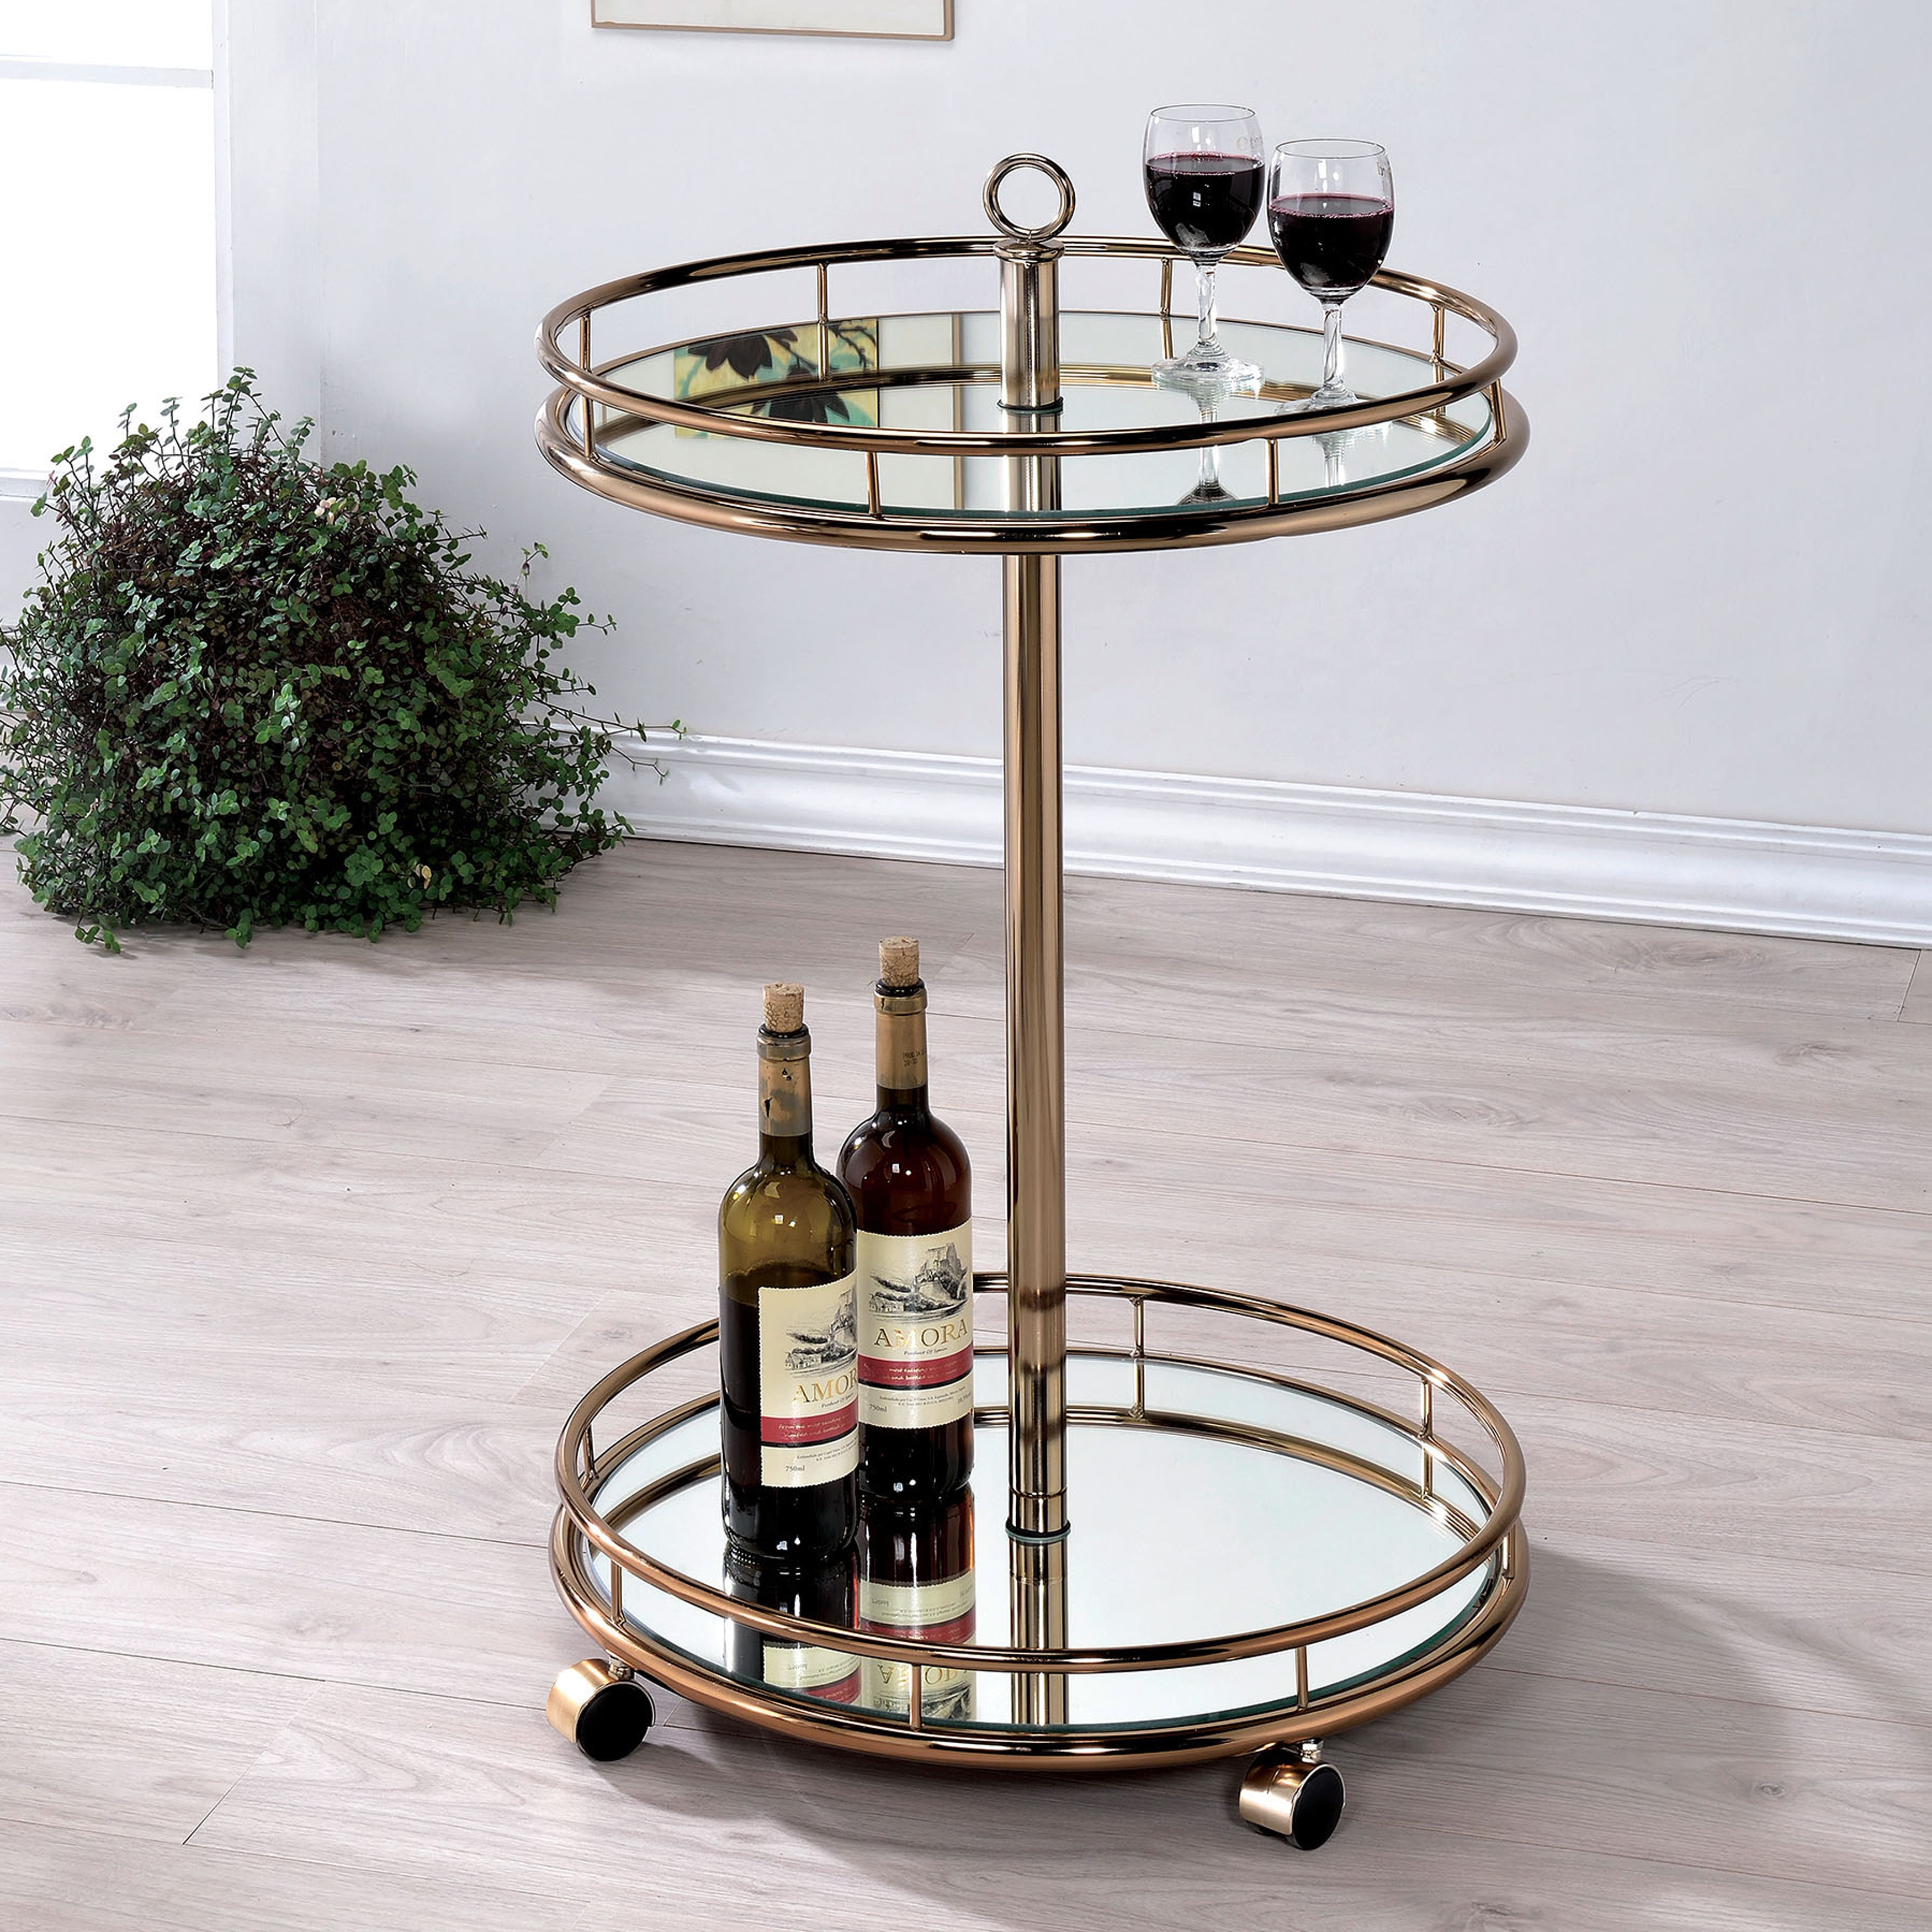 Furniture of America  Odetta Contemporary Champagne 2-shelf Mirrored Bar Cart - N/A